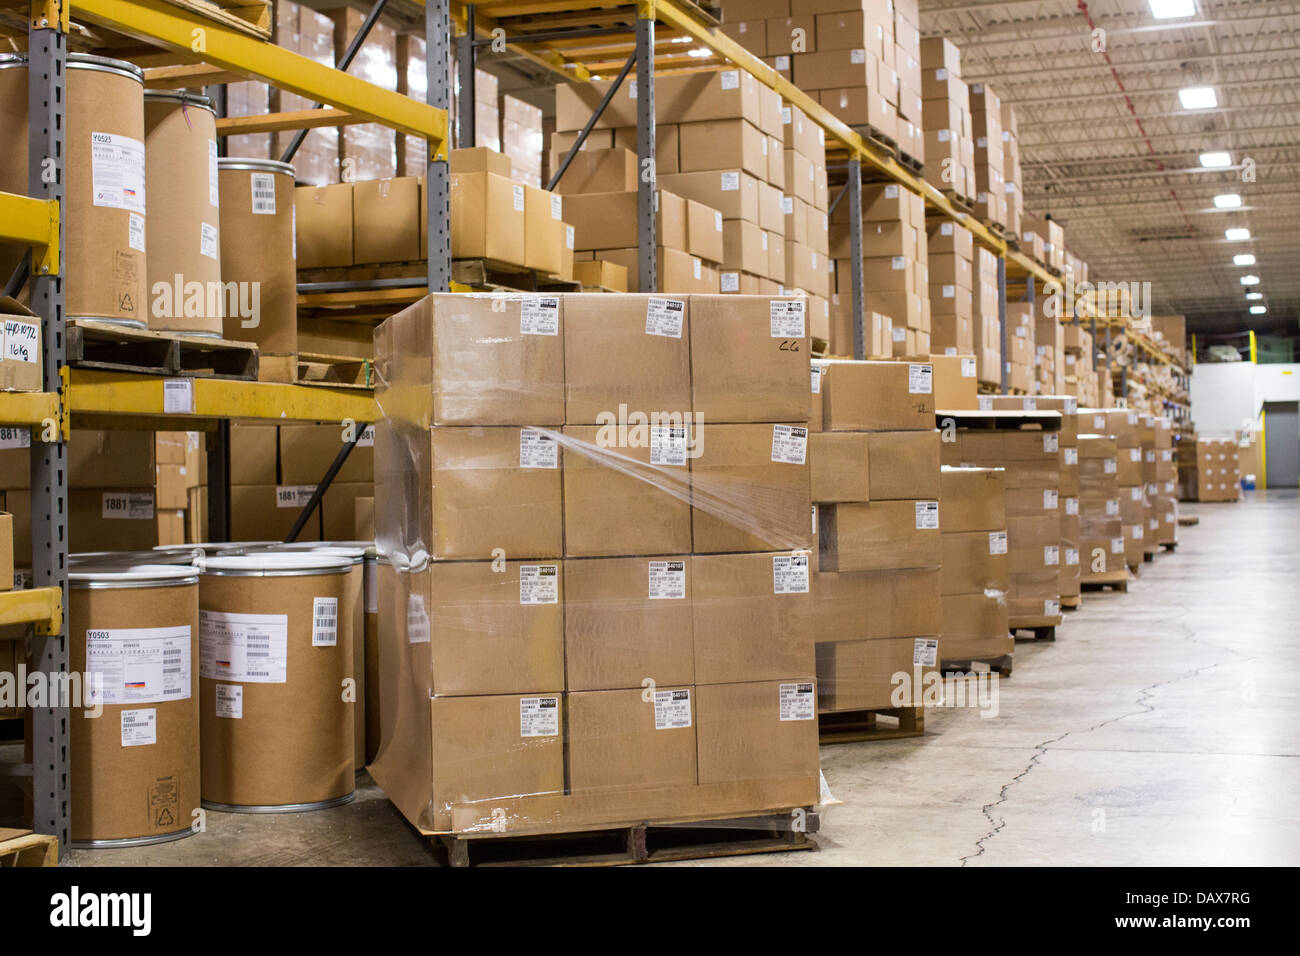 an industrial warehouse full of cardboard boxes on shelving stock rh alamy com warehouse boxes exeter warehouse boxes and boogies exeter